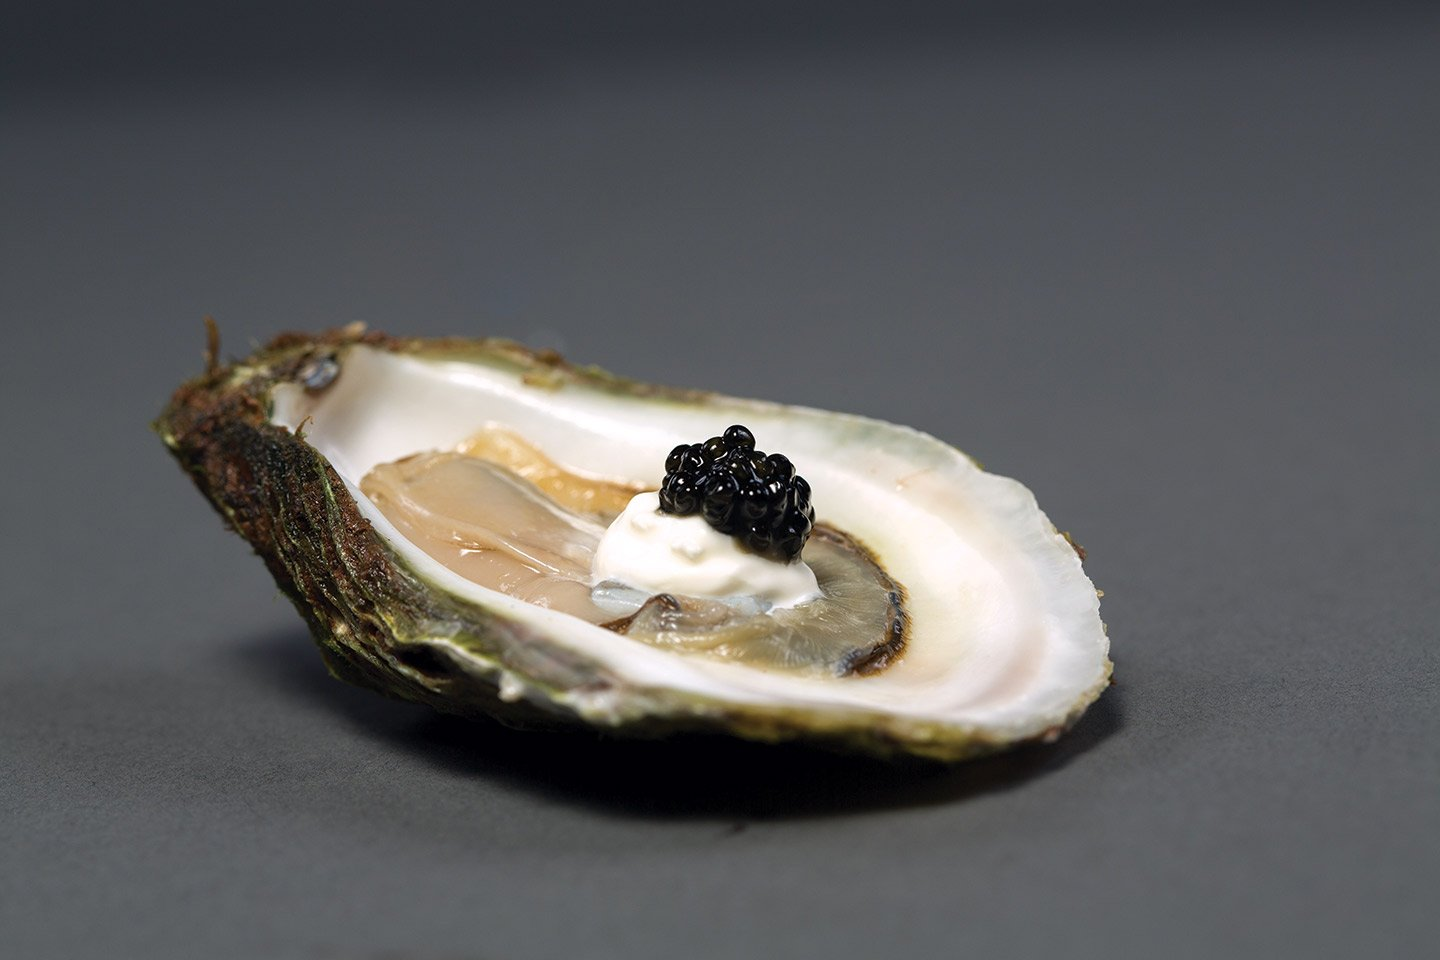 Oyster with caviar and creme fraiche - Oyster with pearls